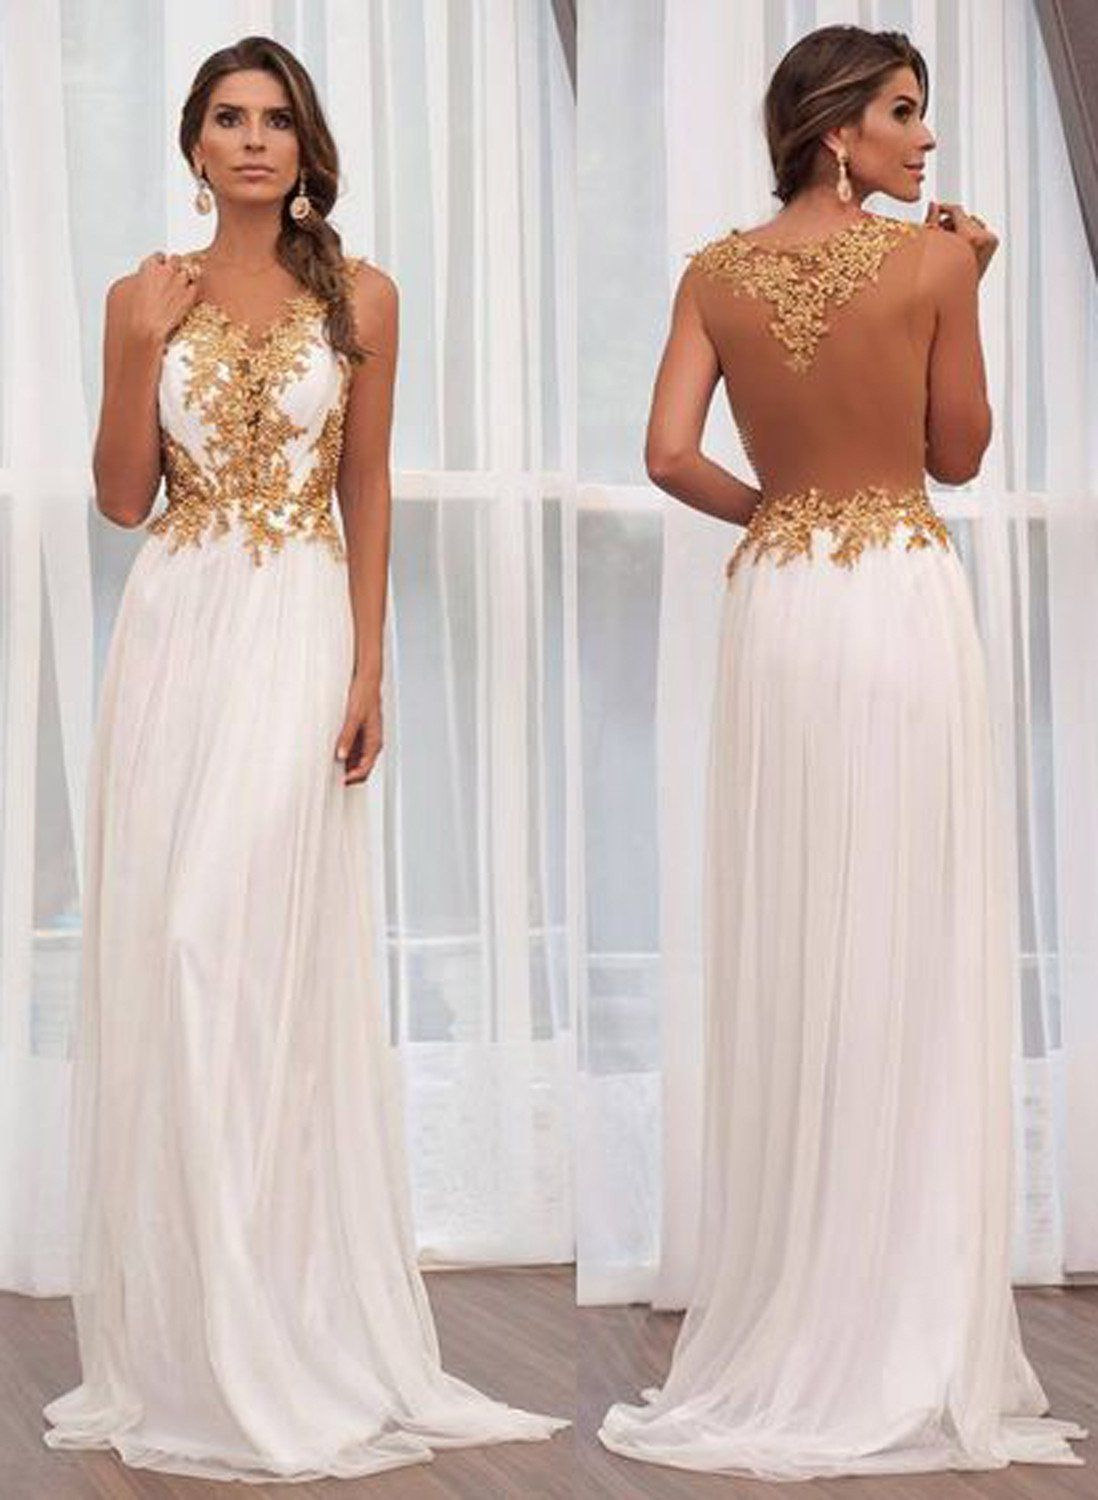 2017 Prom Dresses Ideas that Will Have